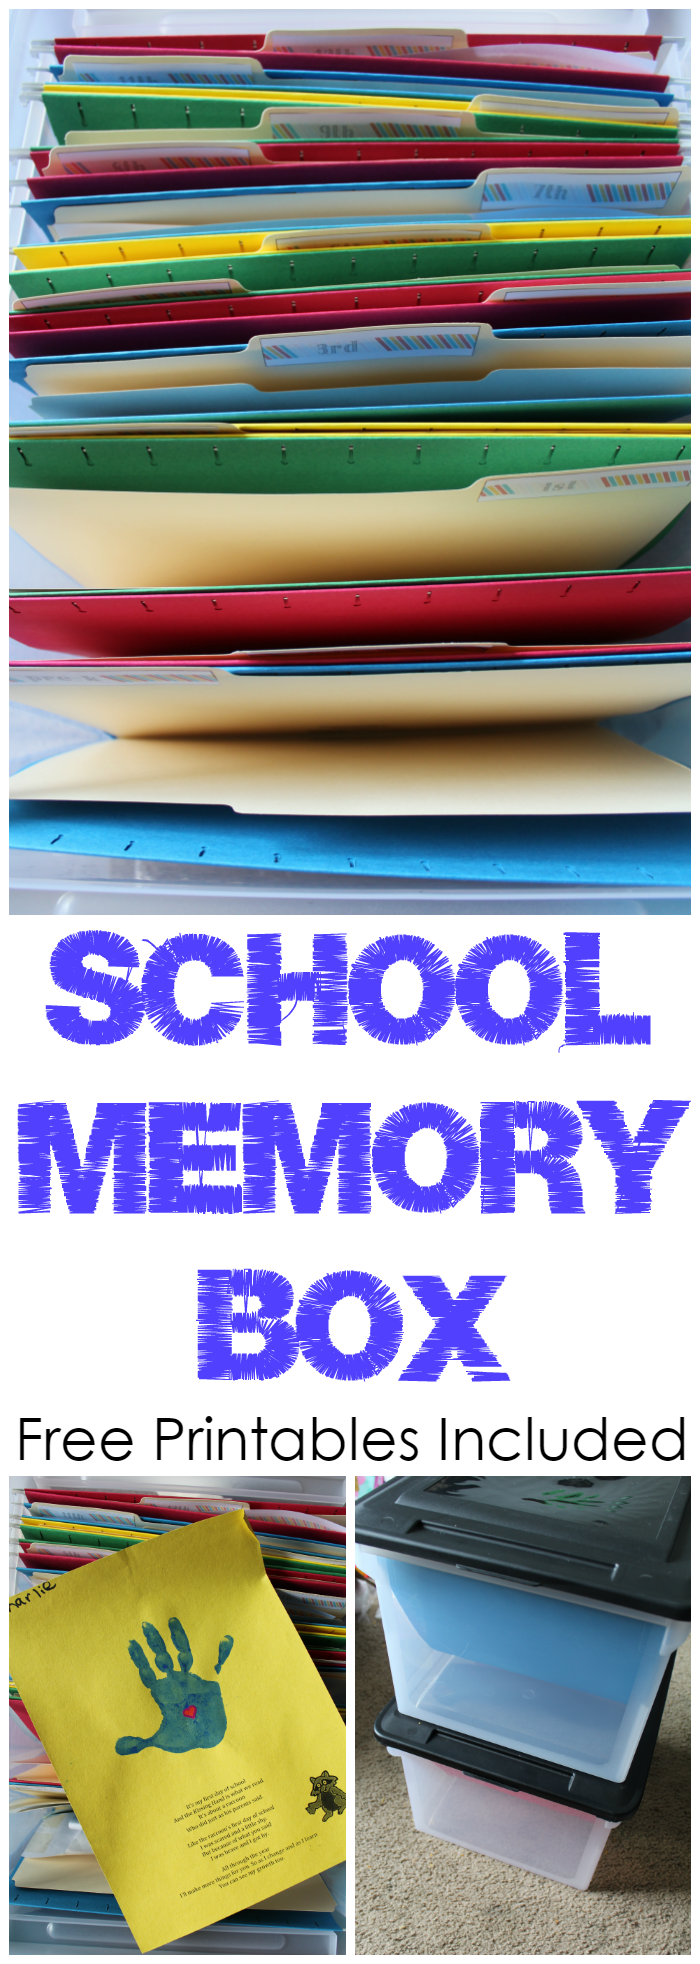 School Memory Box - Use these free printables to create a School Memory Box to organize and store all of your child's school memories and work.